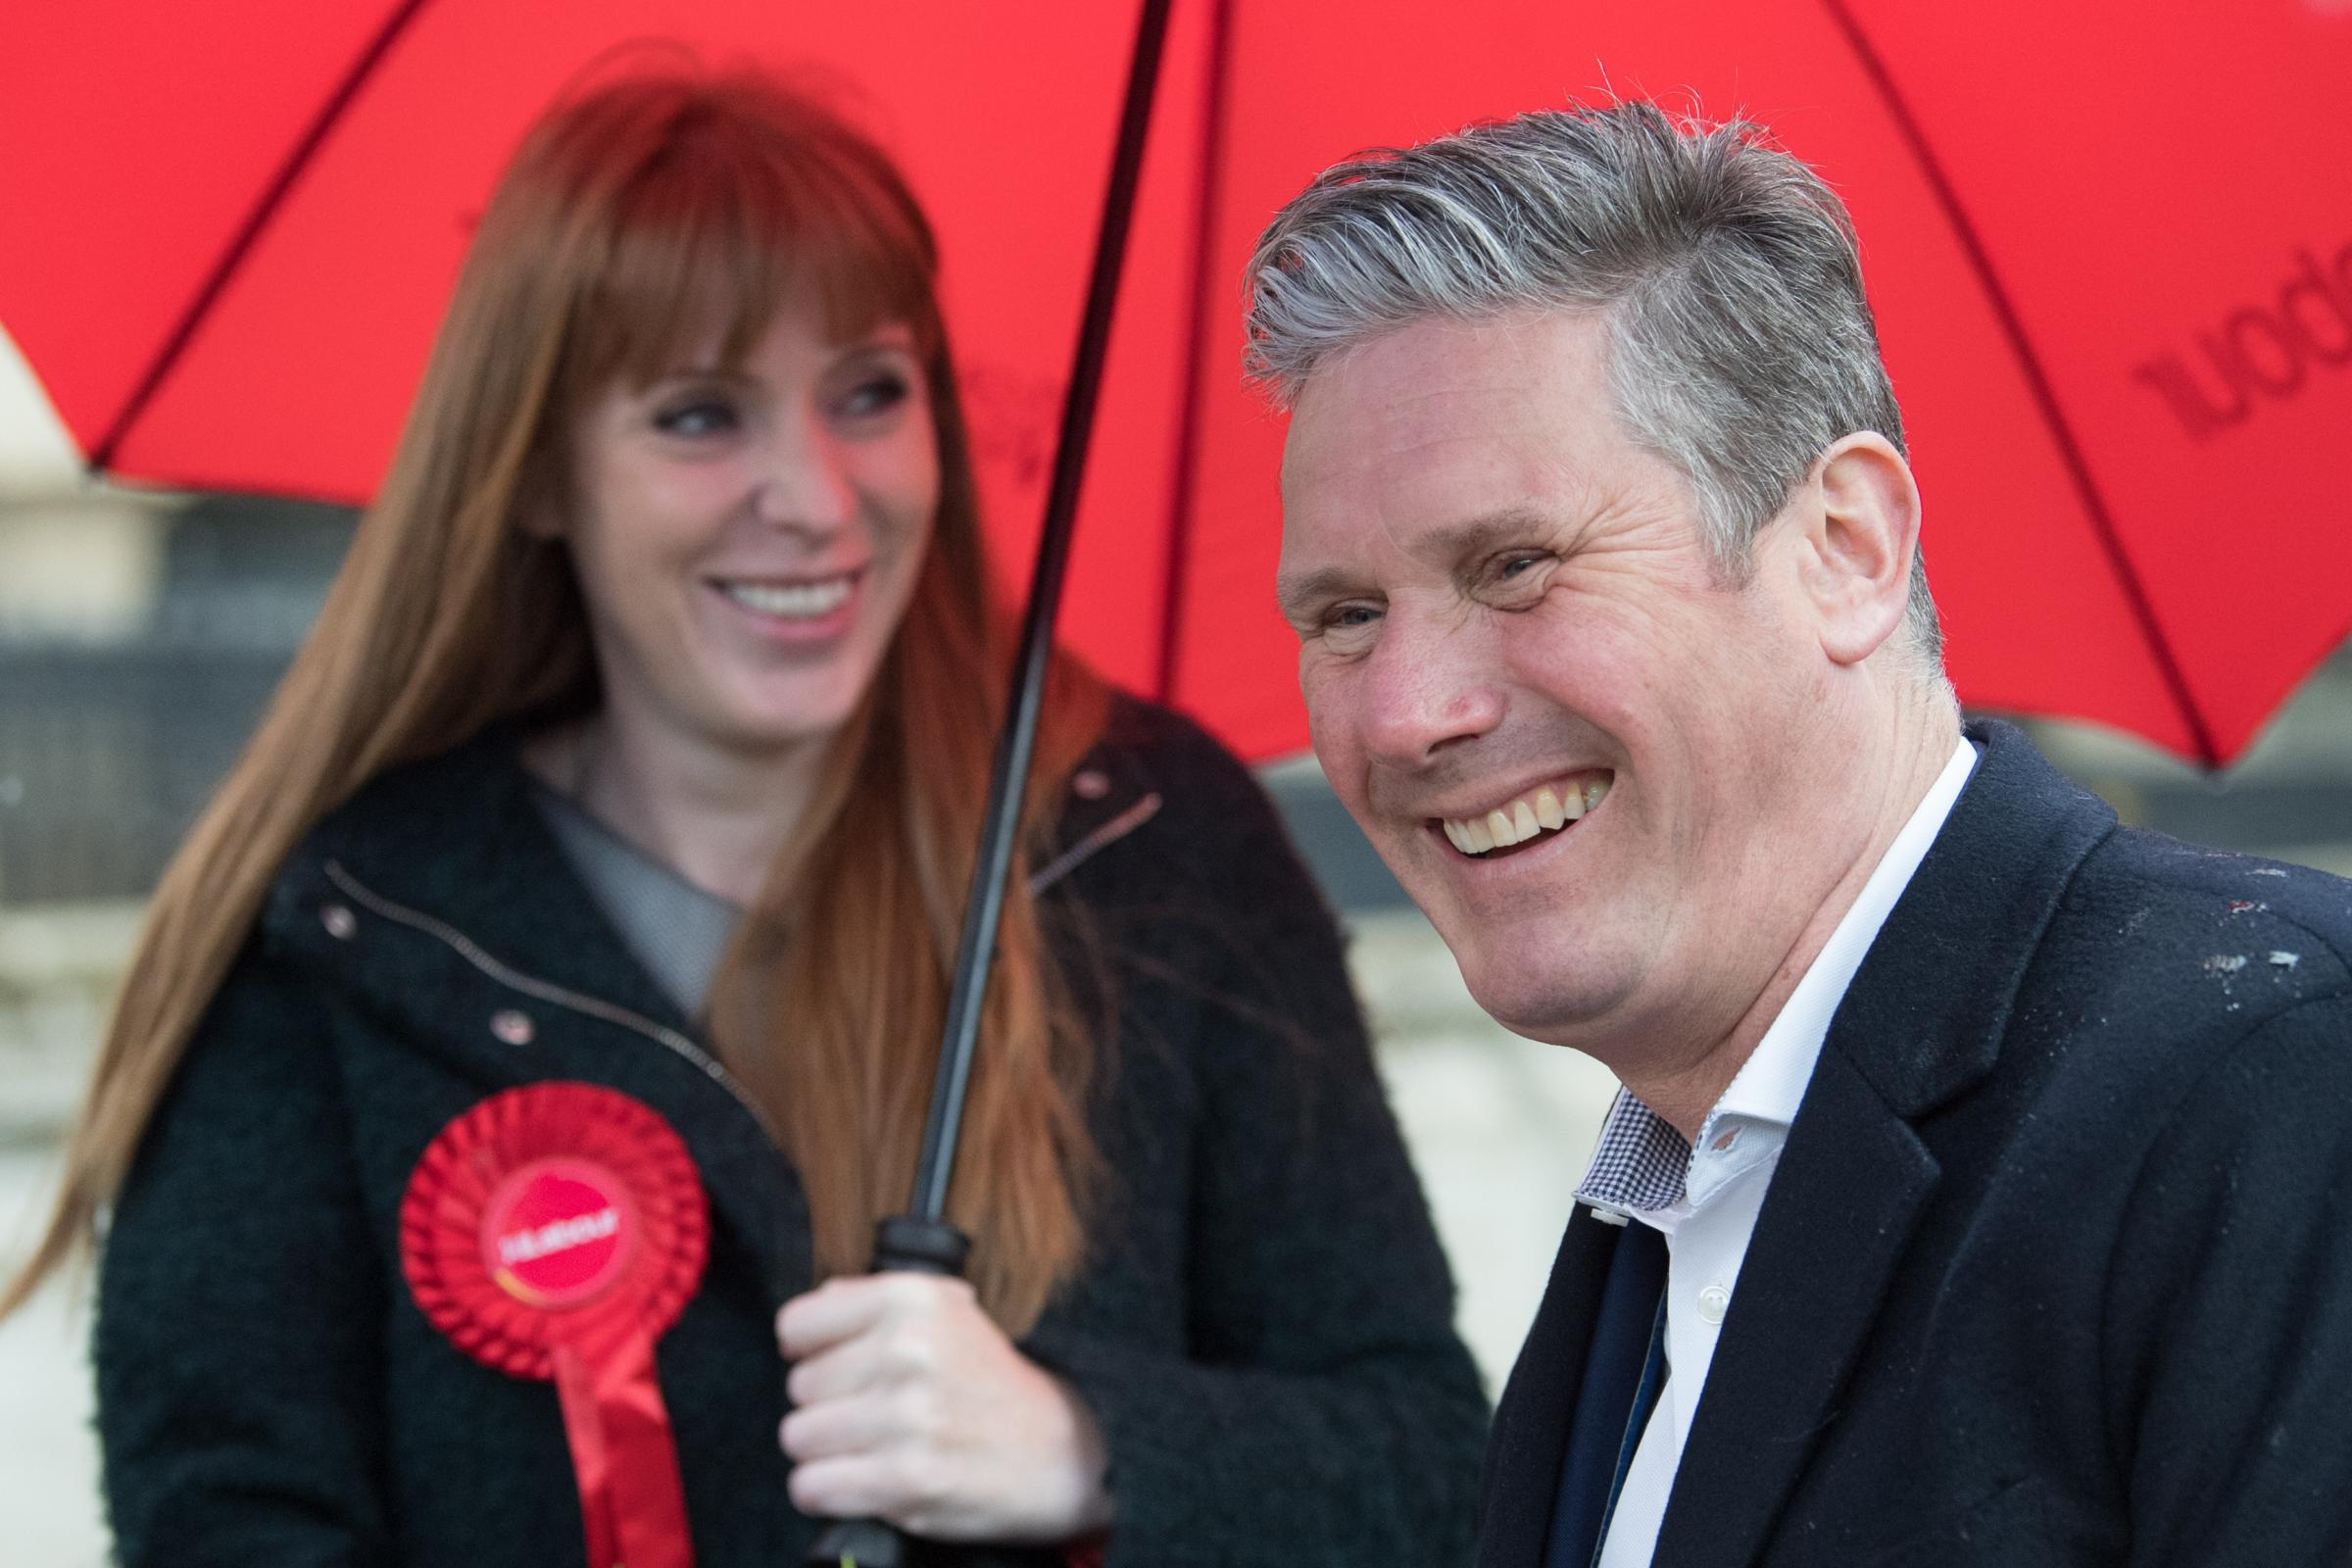 Rebecca McQuillan: The results of English elections could be critical to Scotland's future